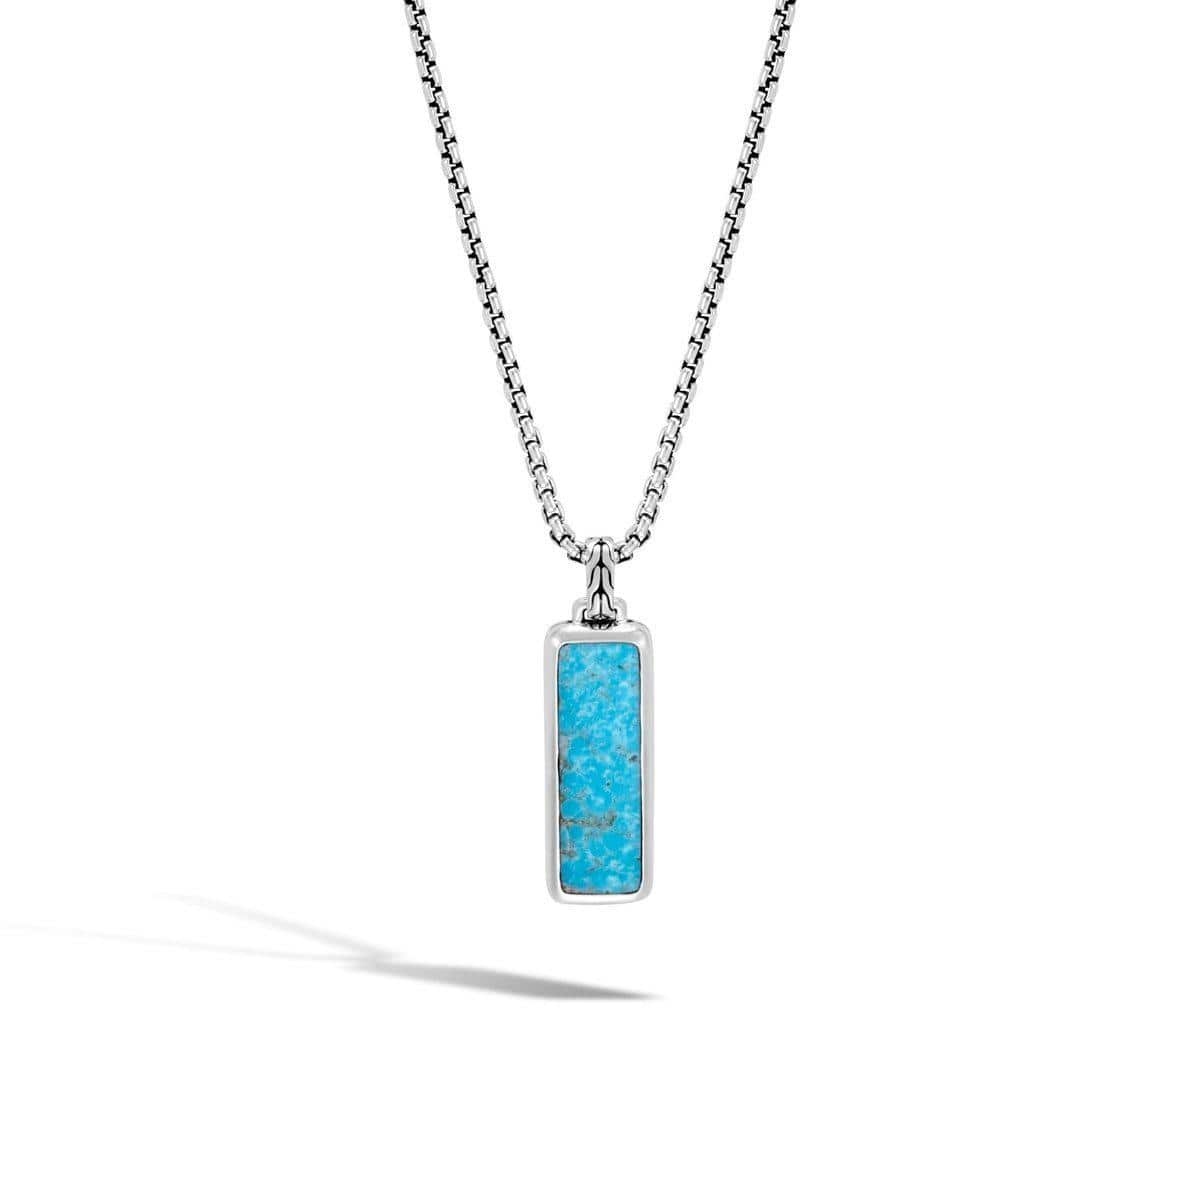 Chain Men's Dog Tag Pendant with Turquoise - NBS9995591TQBM - John Hardy